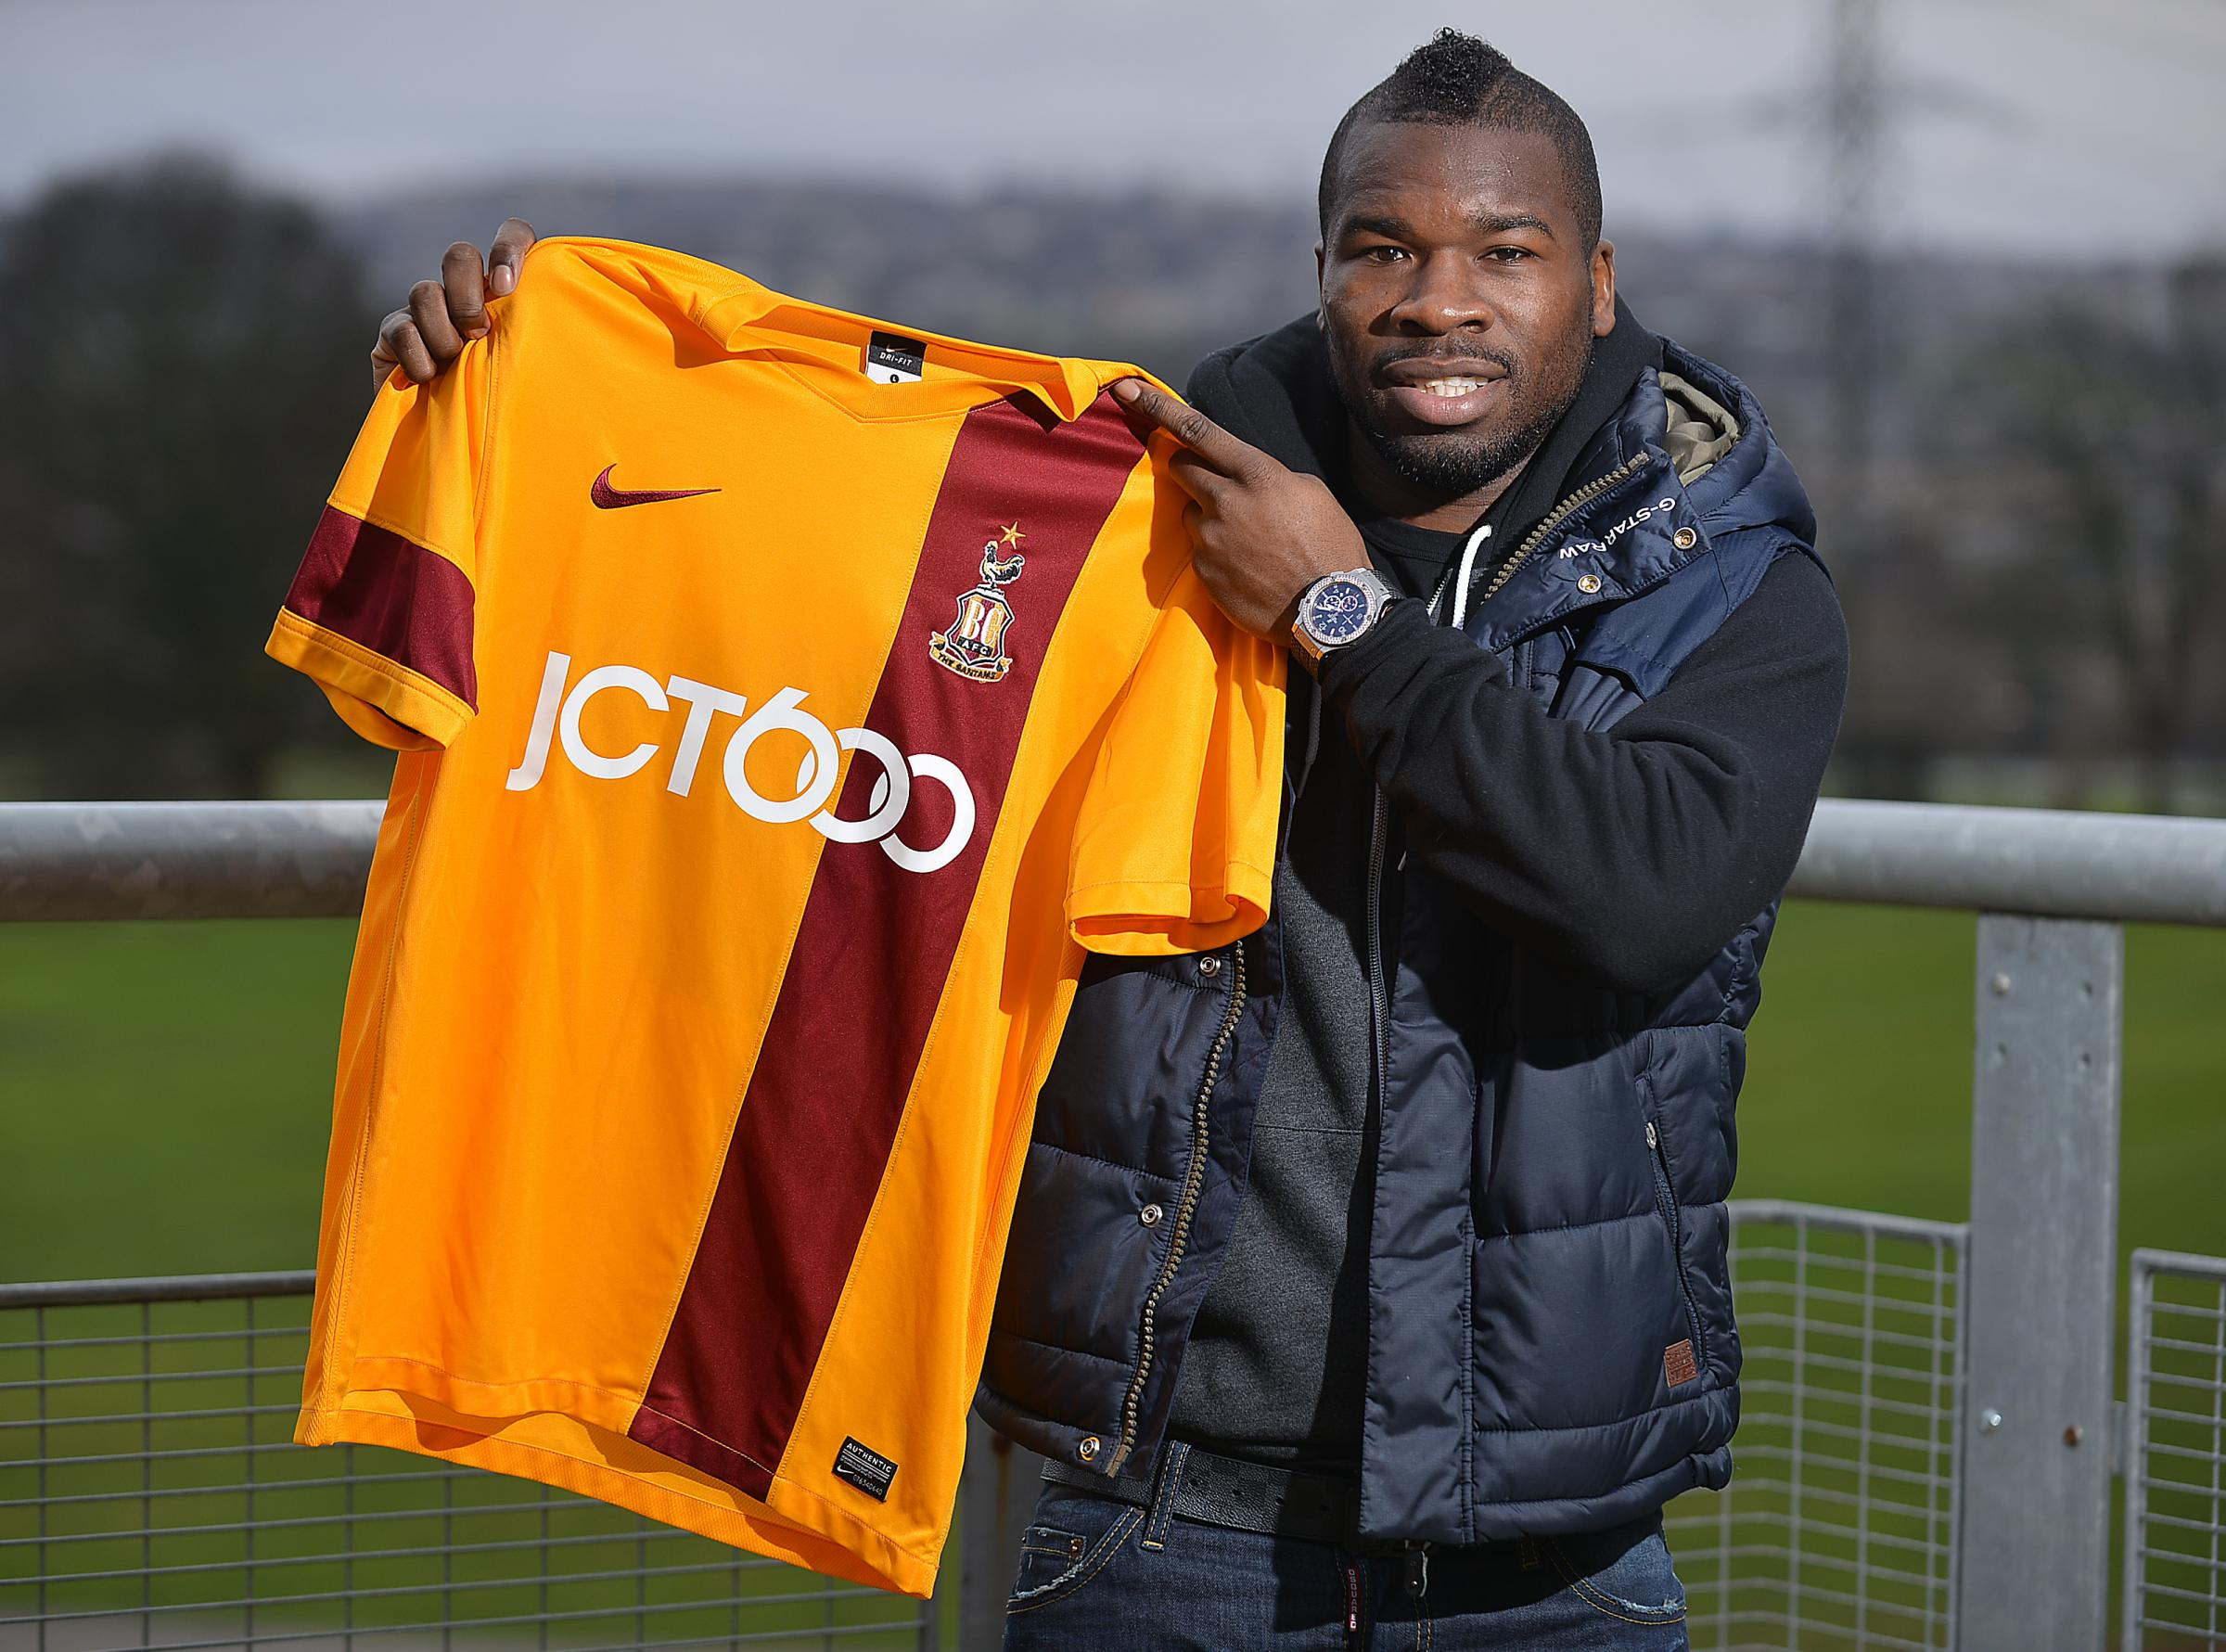 Aaron Mclean poses with a City shirt on his first day training with his new club